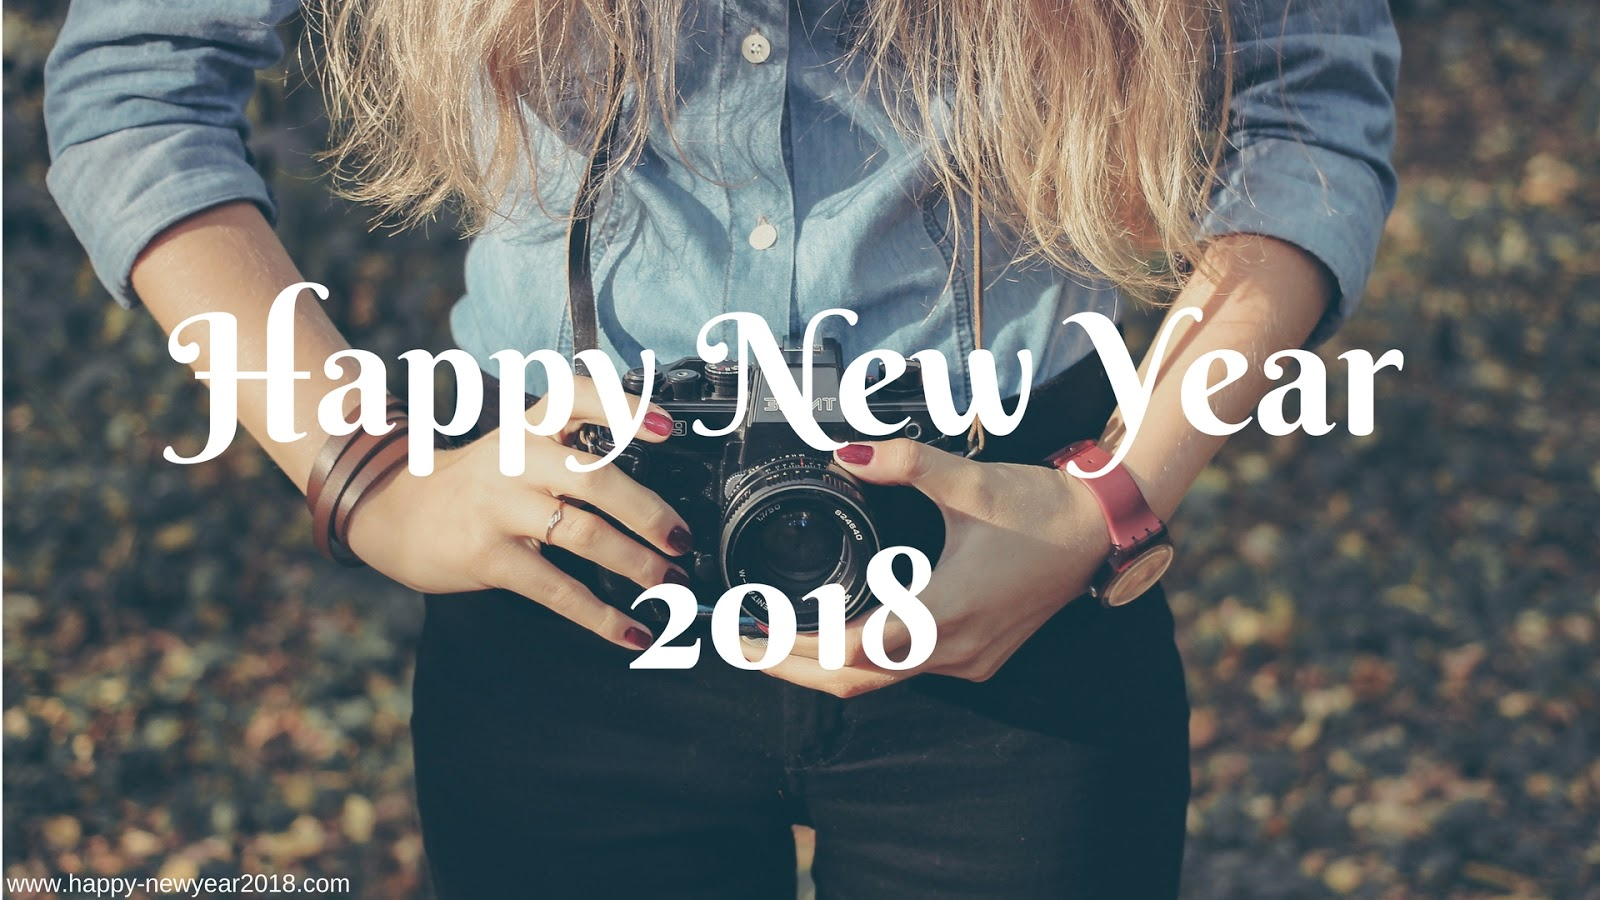 happy new year images hd wallpapers 2018